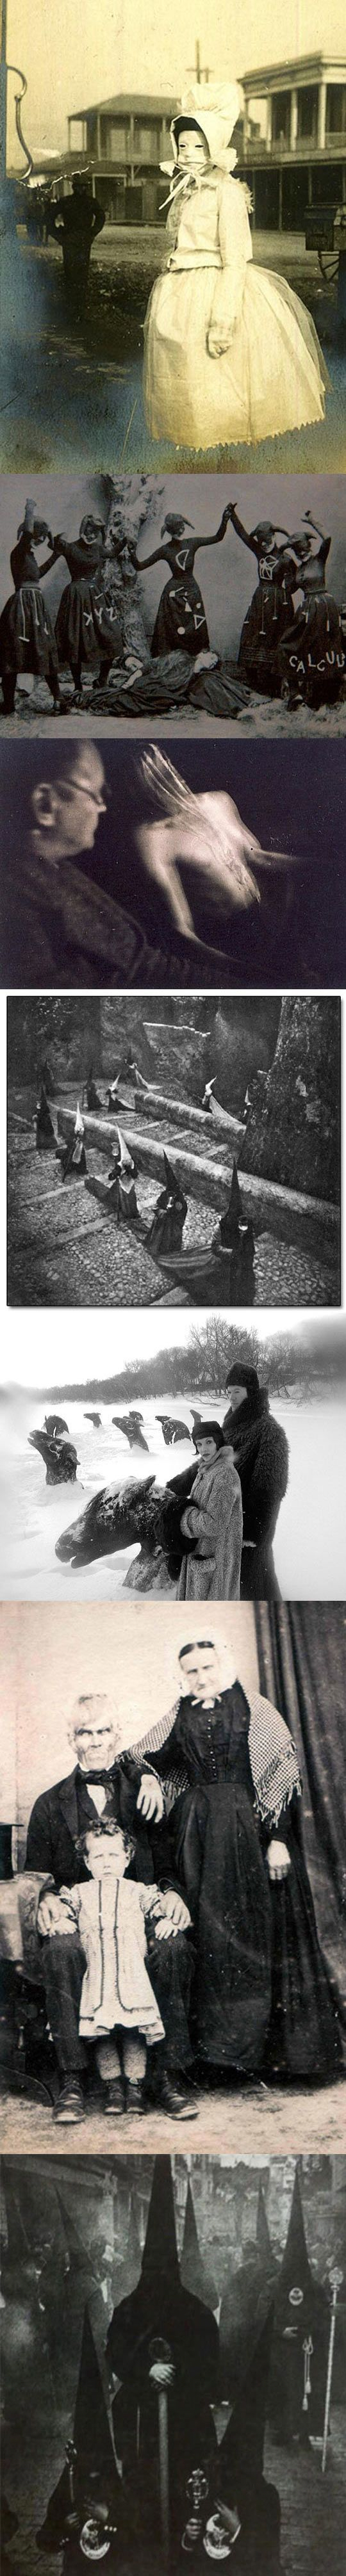 funny-creepy-old-pictures-black-white-costume